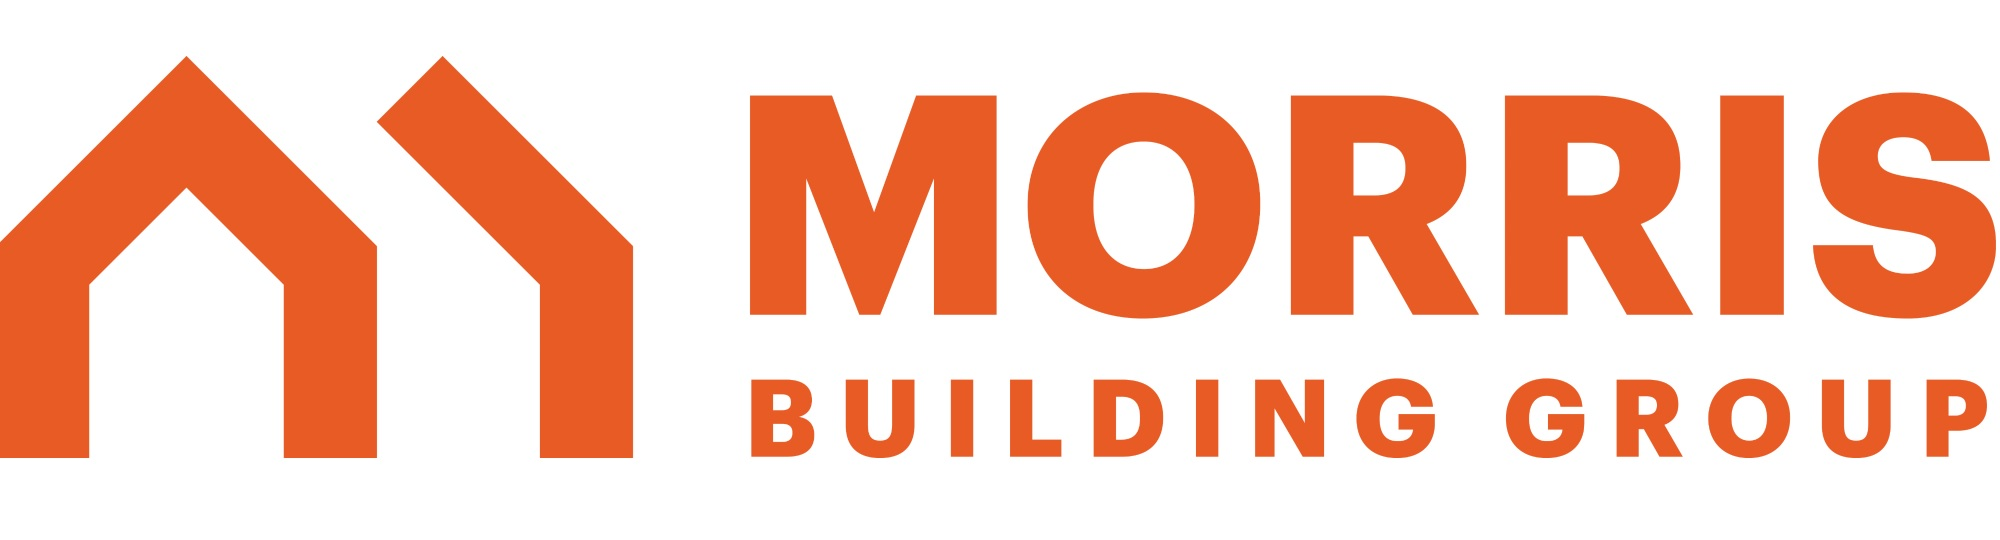 Morris Building Group